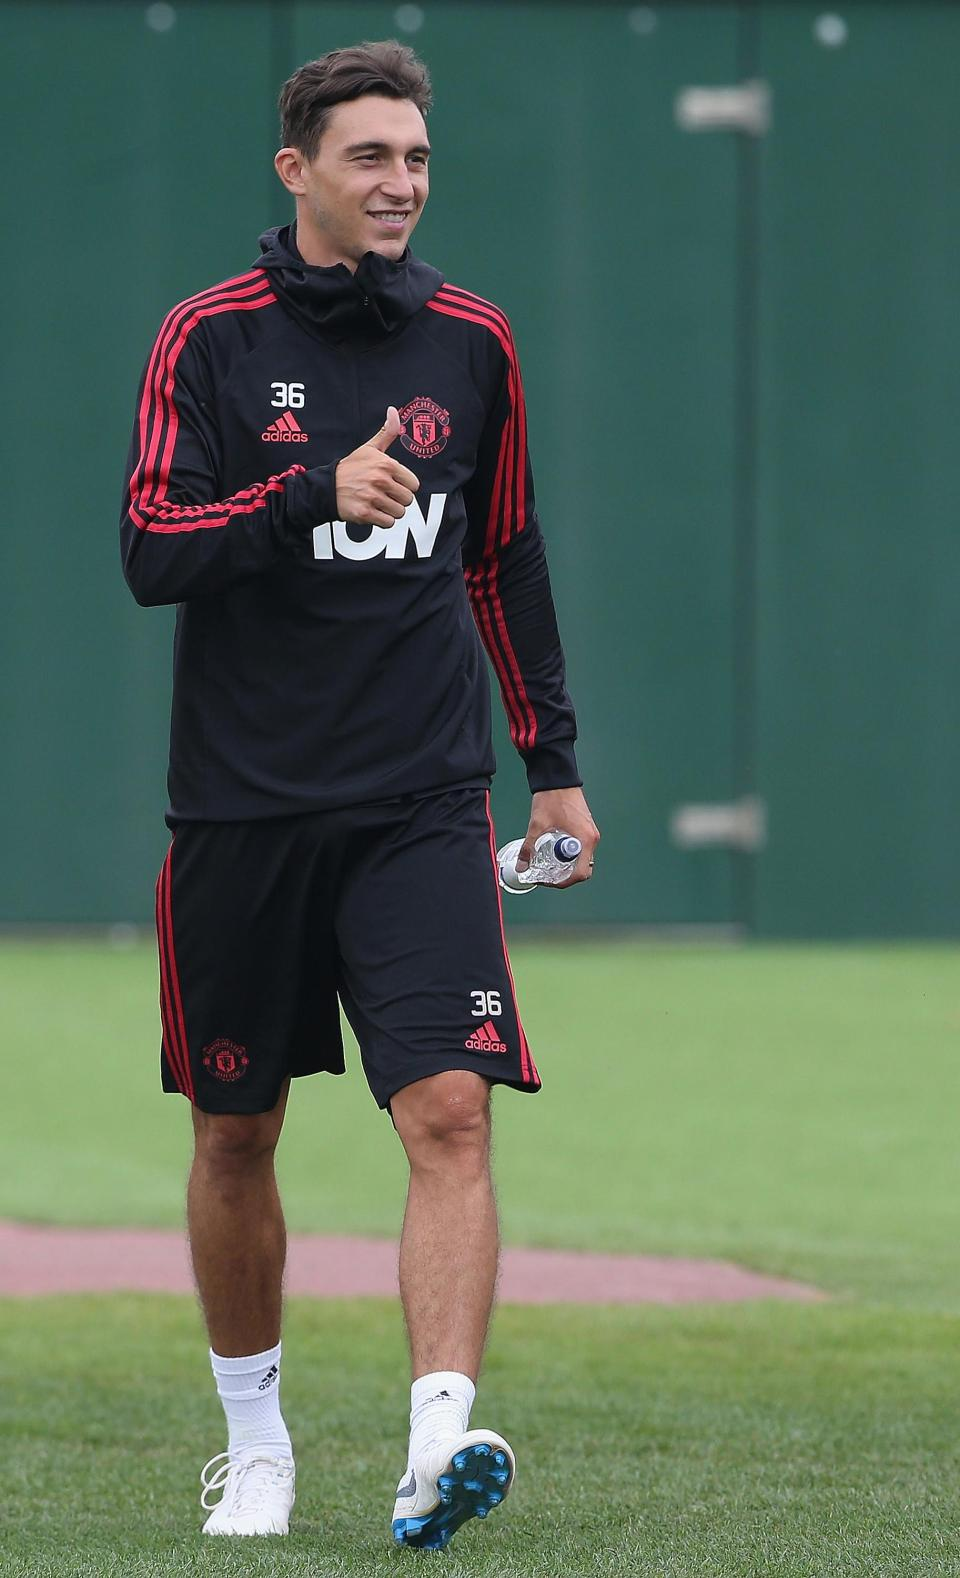 Napoli have submitted an offer for Darmian who is unhappy with the lack of game time at United